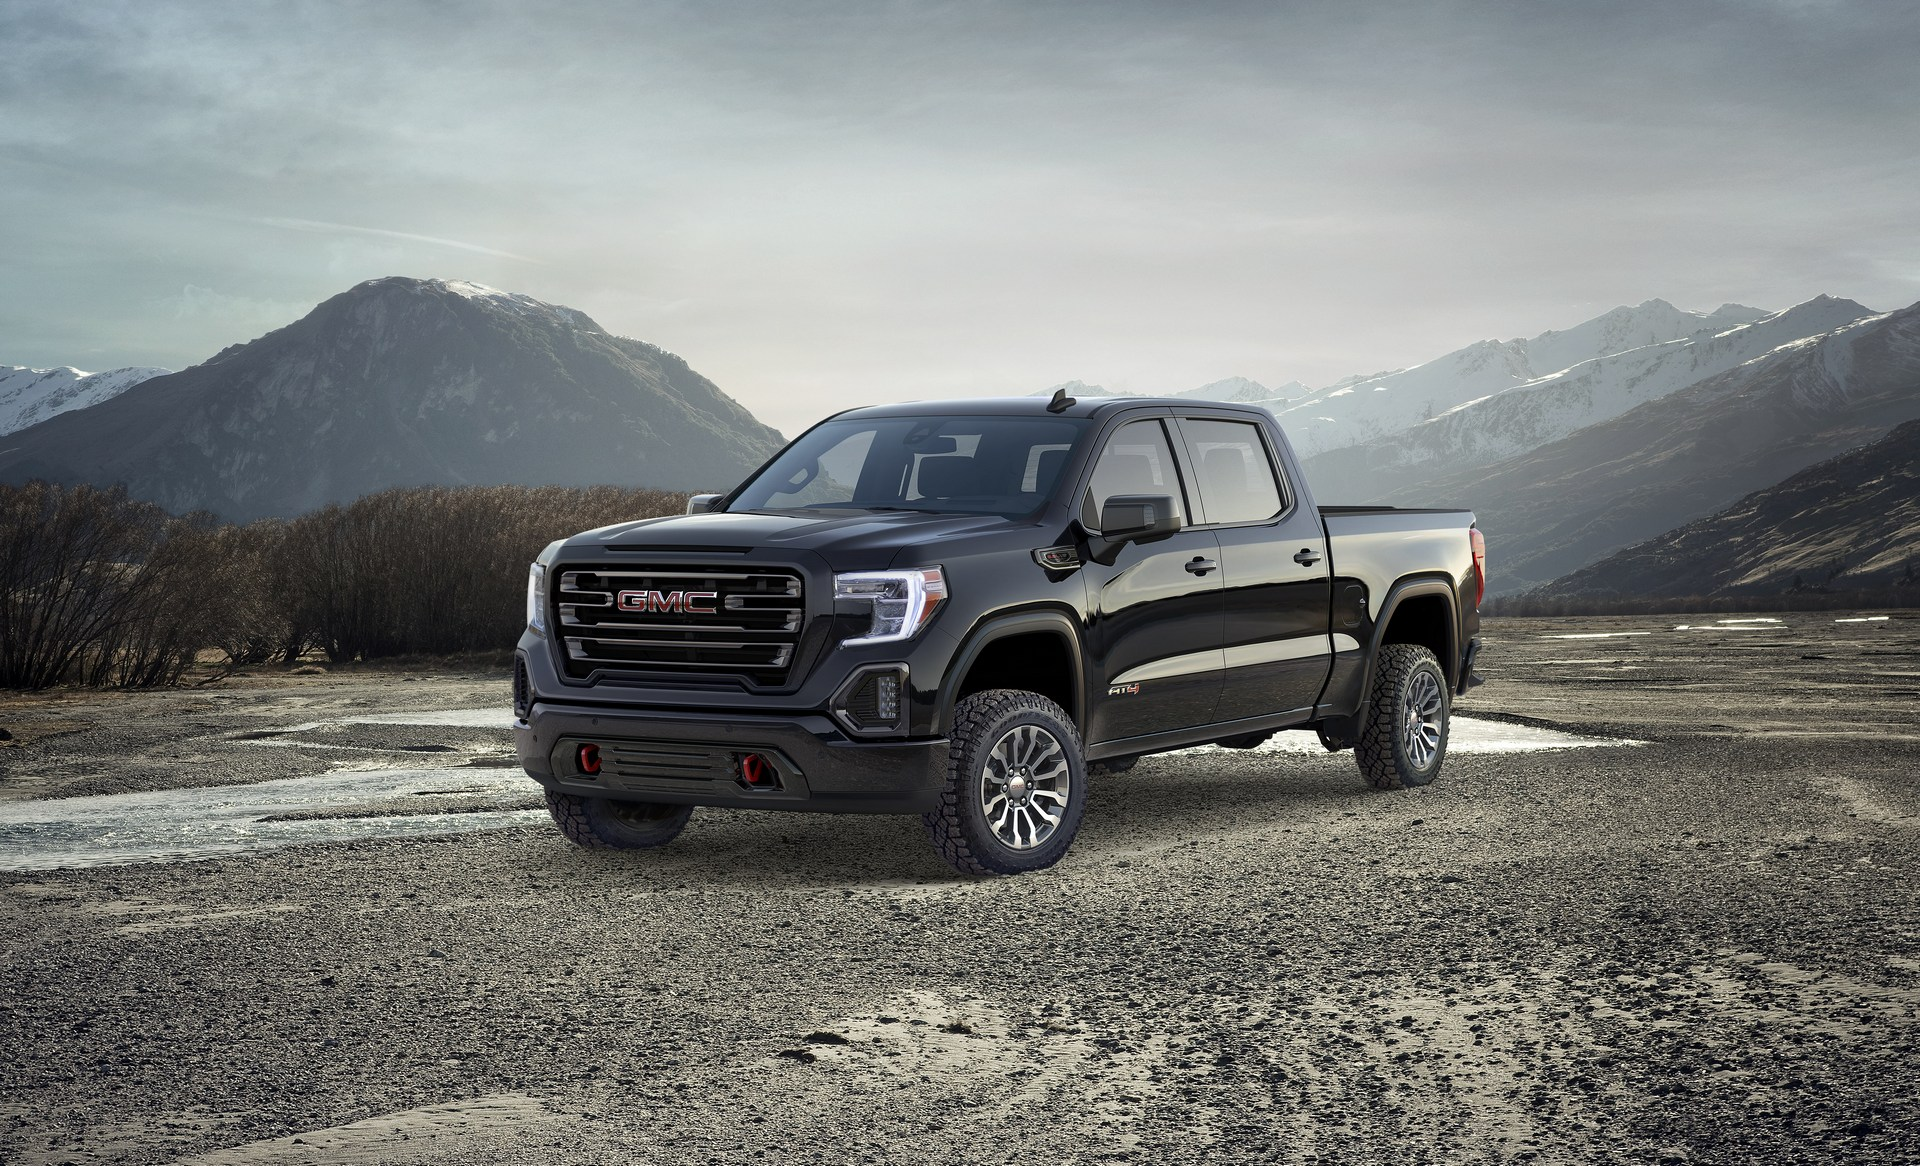 Gmc Sierra Elevation >> 2019 GMC Sierra 1500 Elevation Comes Standard With Turbo Engine - autoevolution